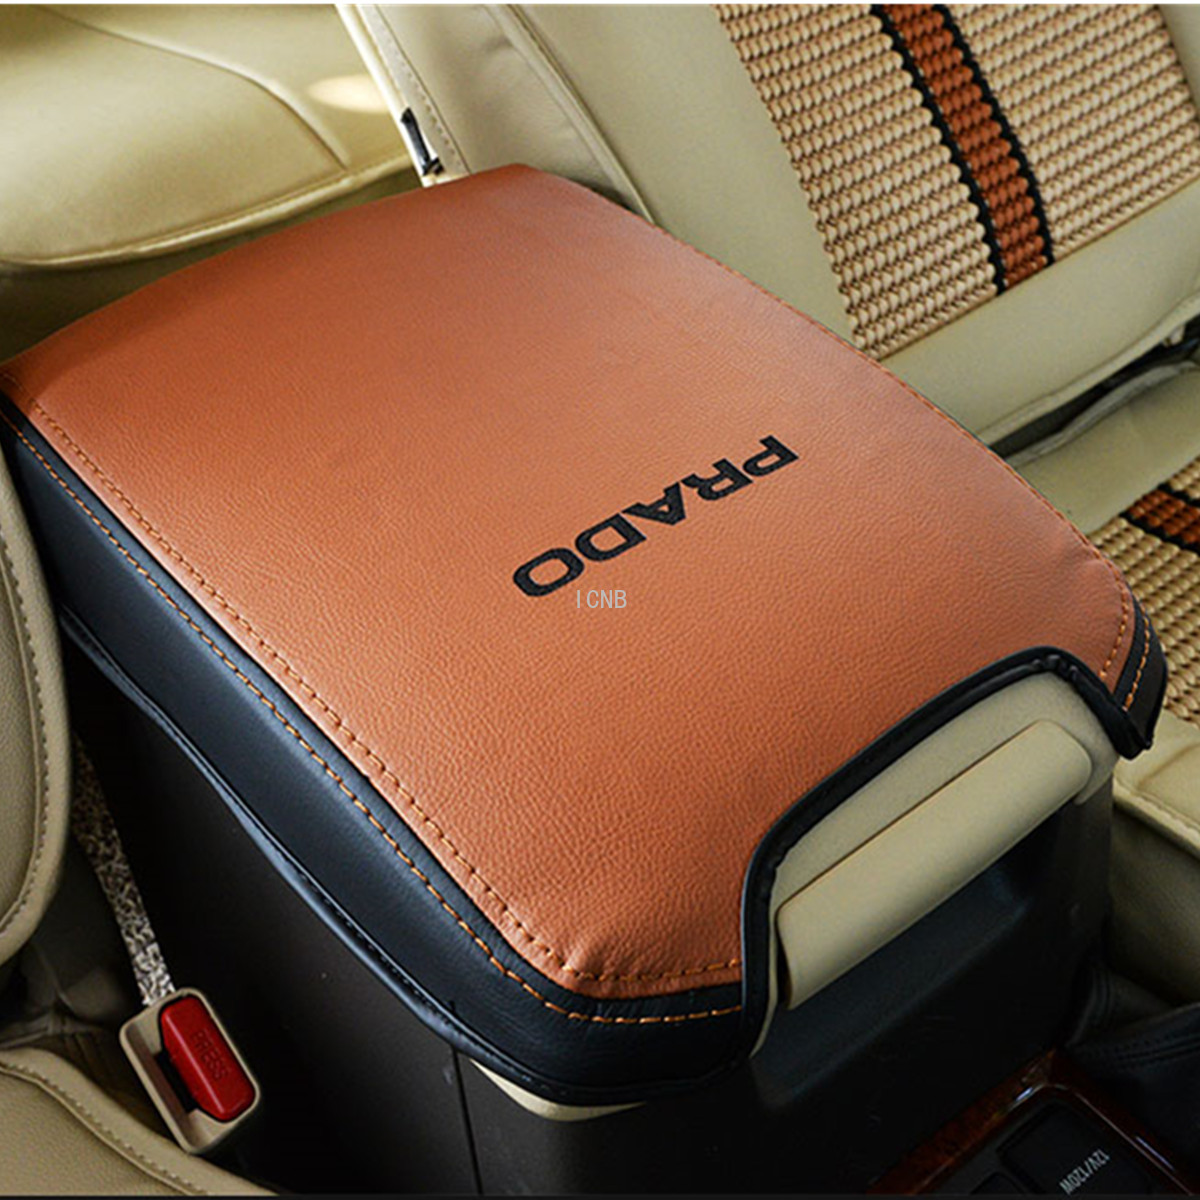 Seat Center Armrest Box Cover for <font><b>Toyota</b></font> <font><b>Land</b></font> <font><b>Cruiser</b></font> <font><b>Prado</b></font> <font><b>120</b></font> 2003 2004 2005 <font><b>2006</b></font> 2007 2008 2009 Accessories image